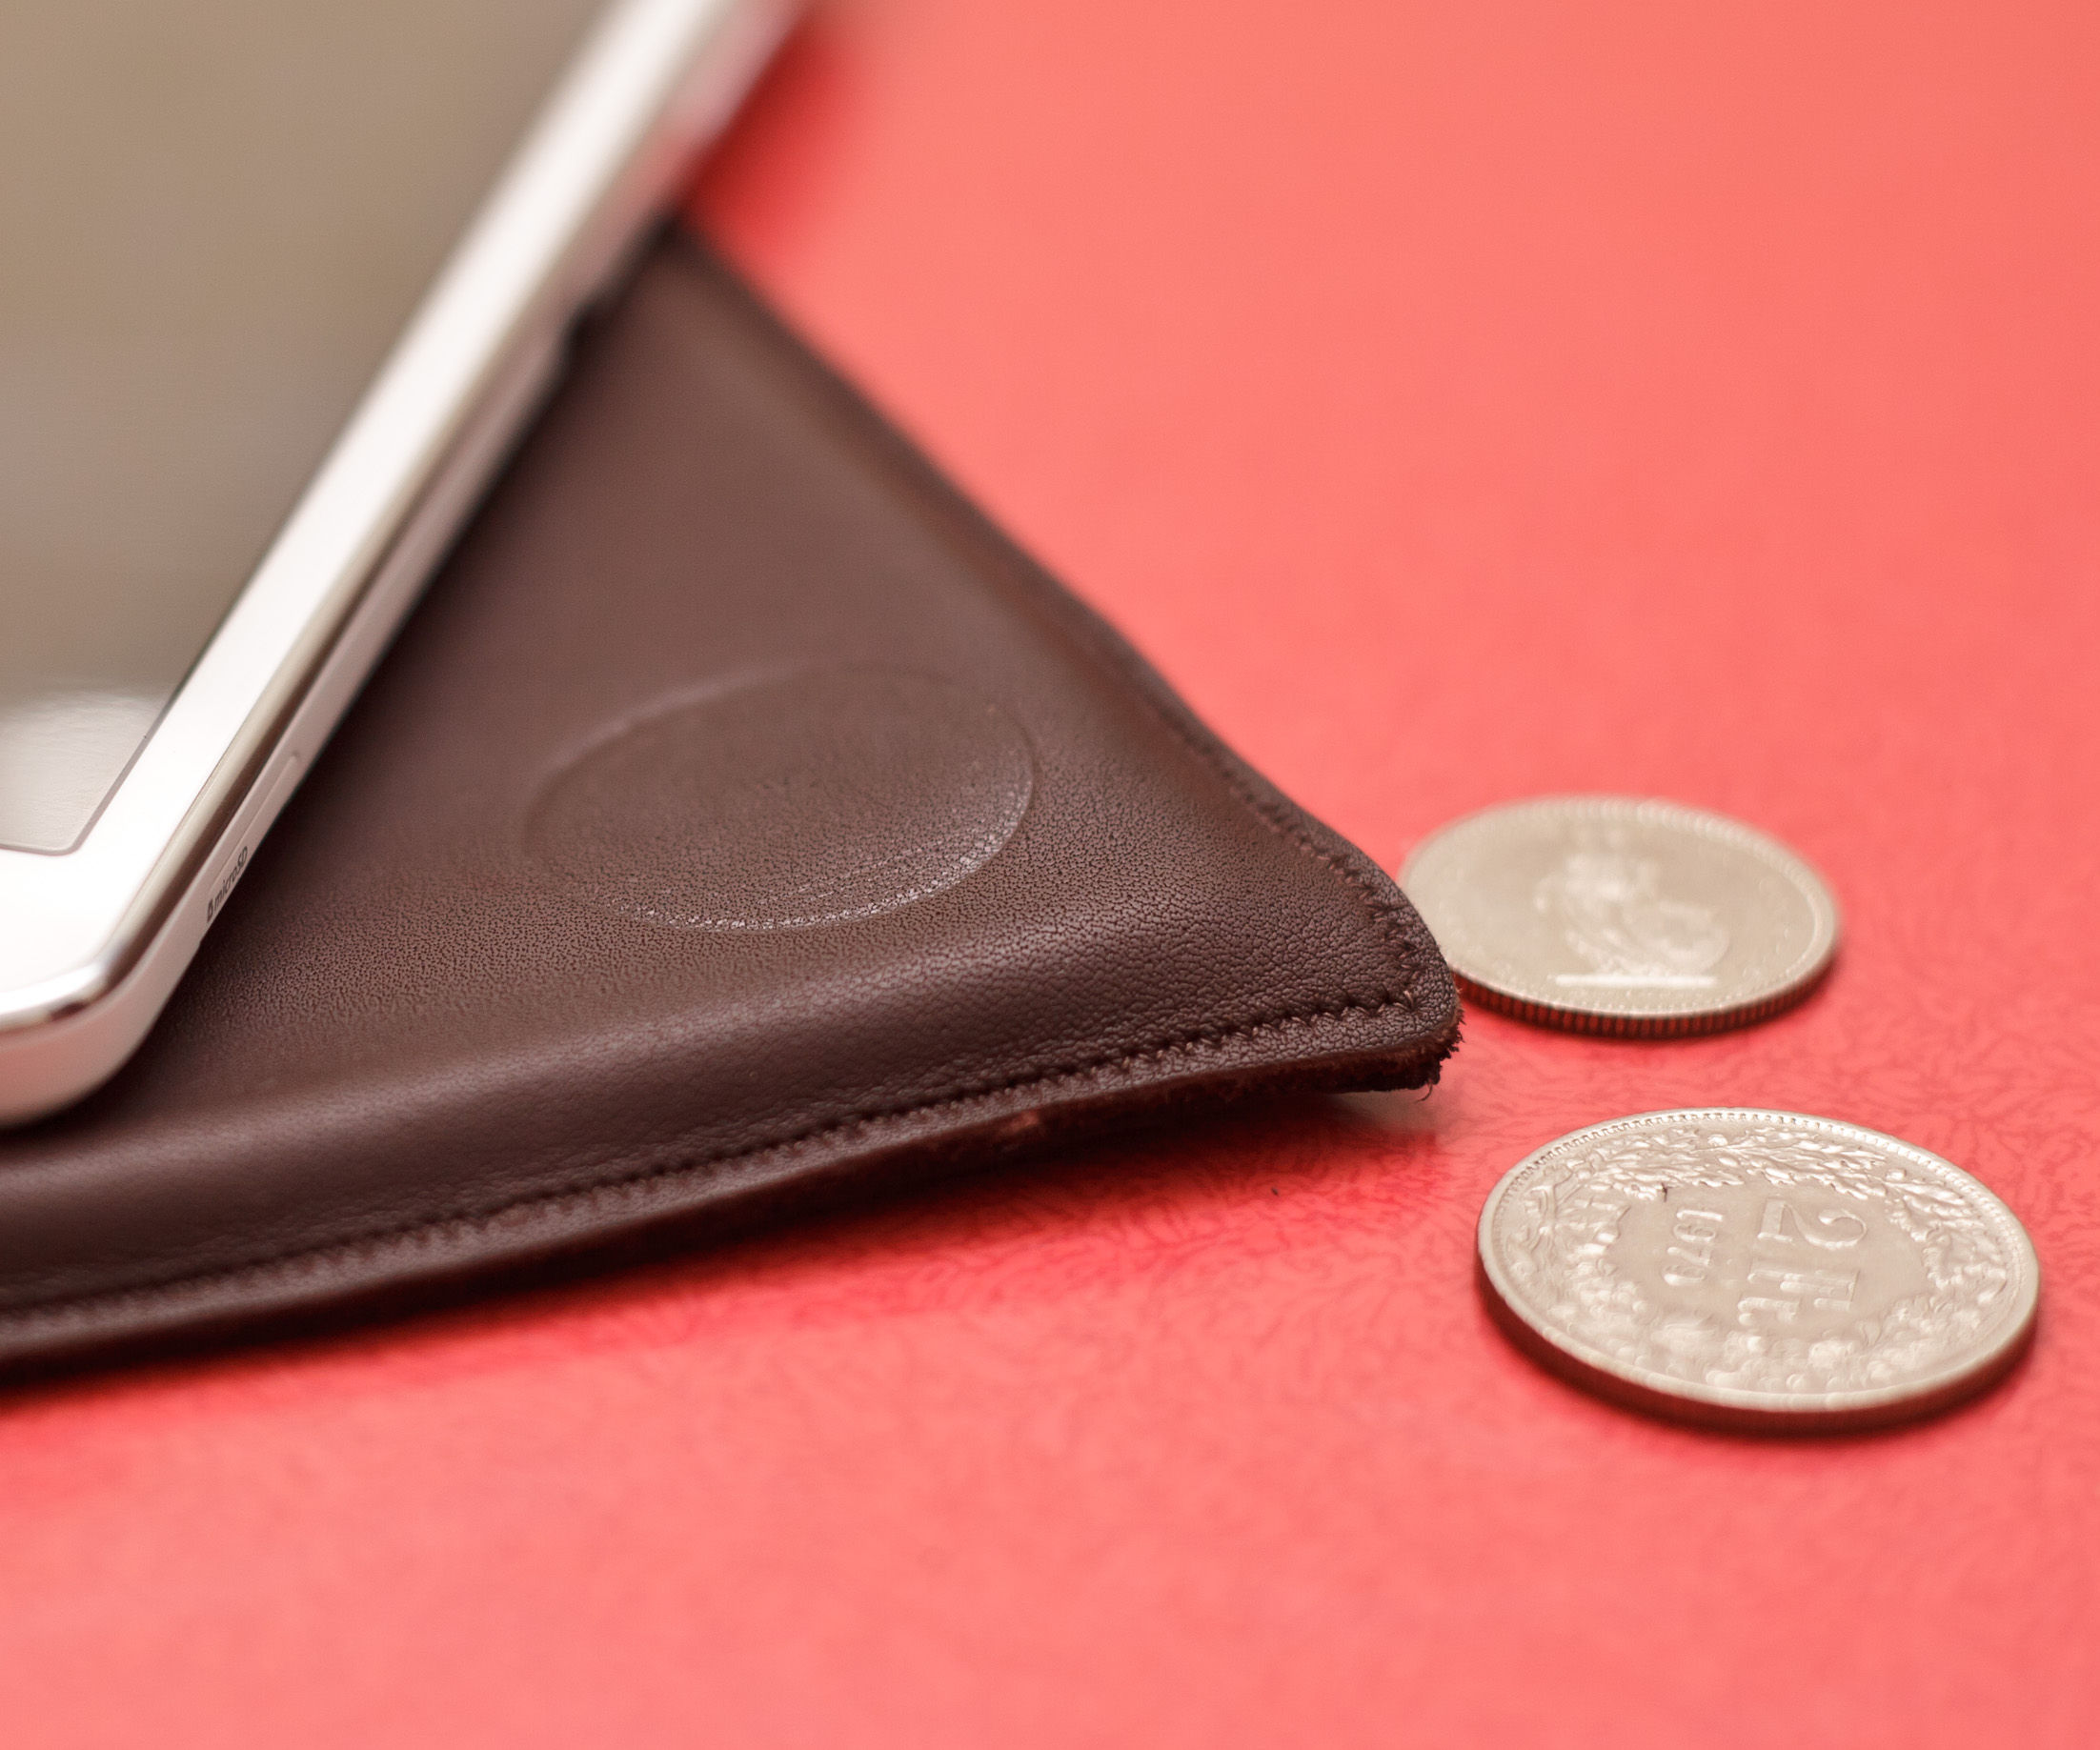 leather case for your device